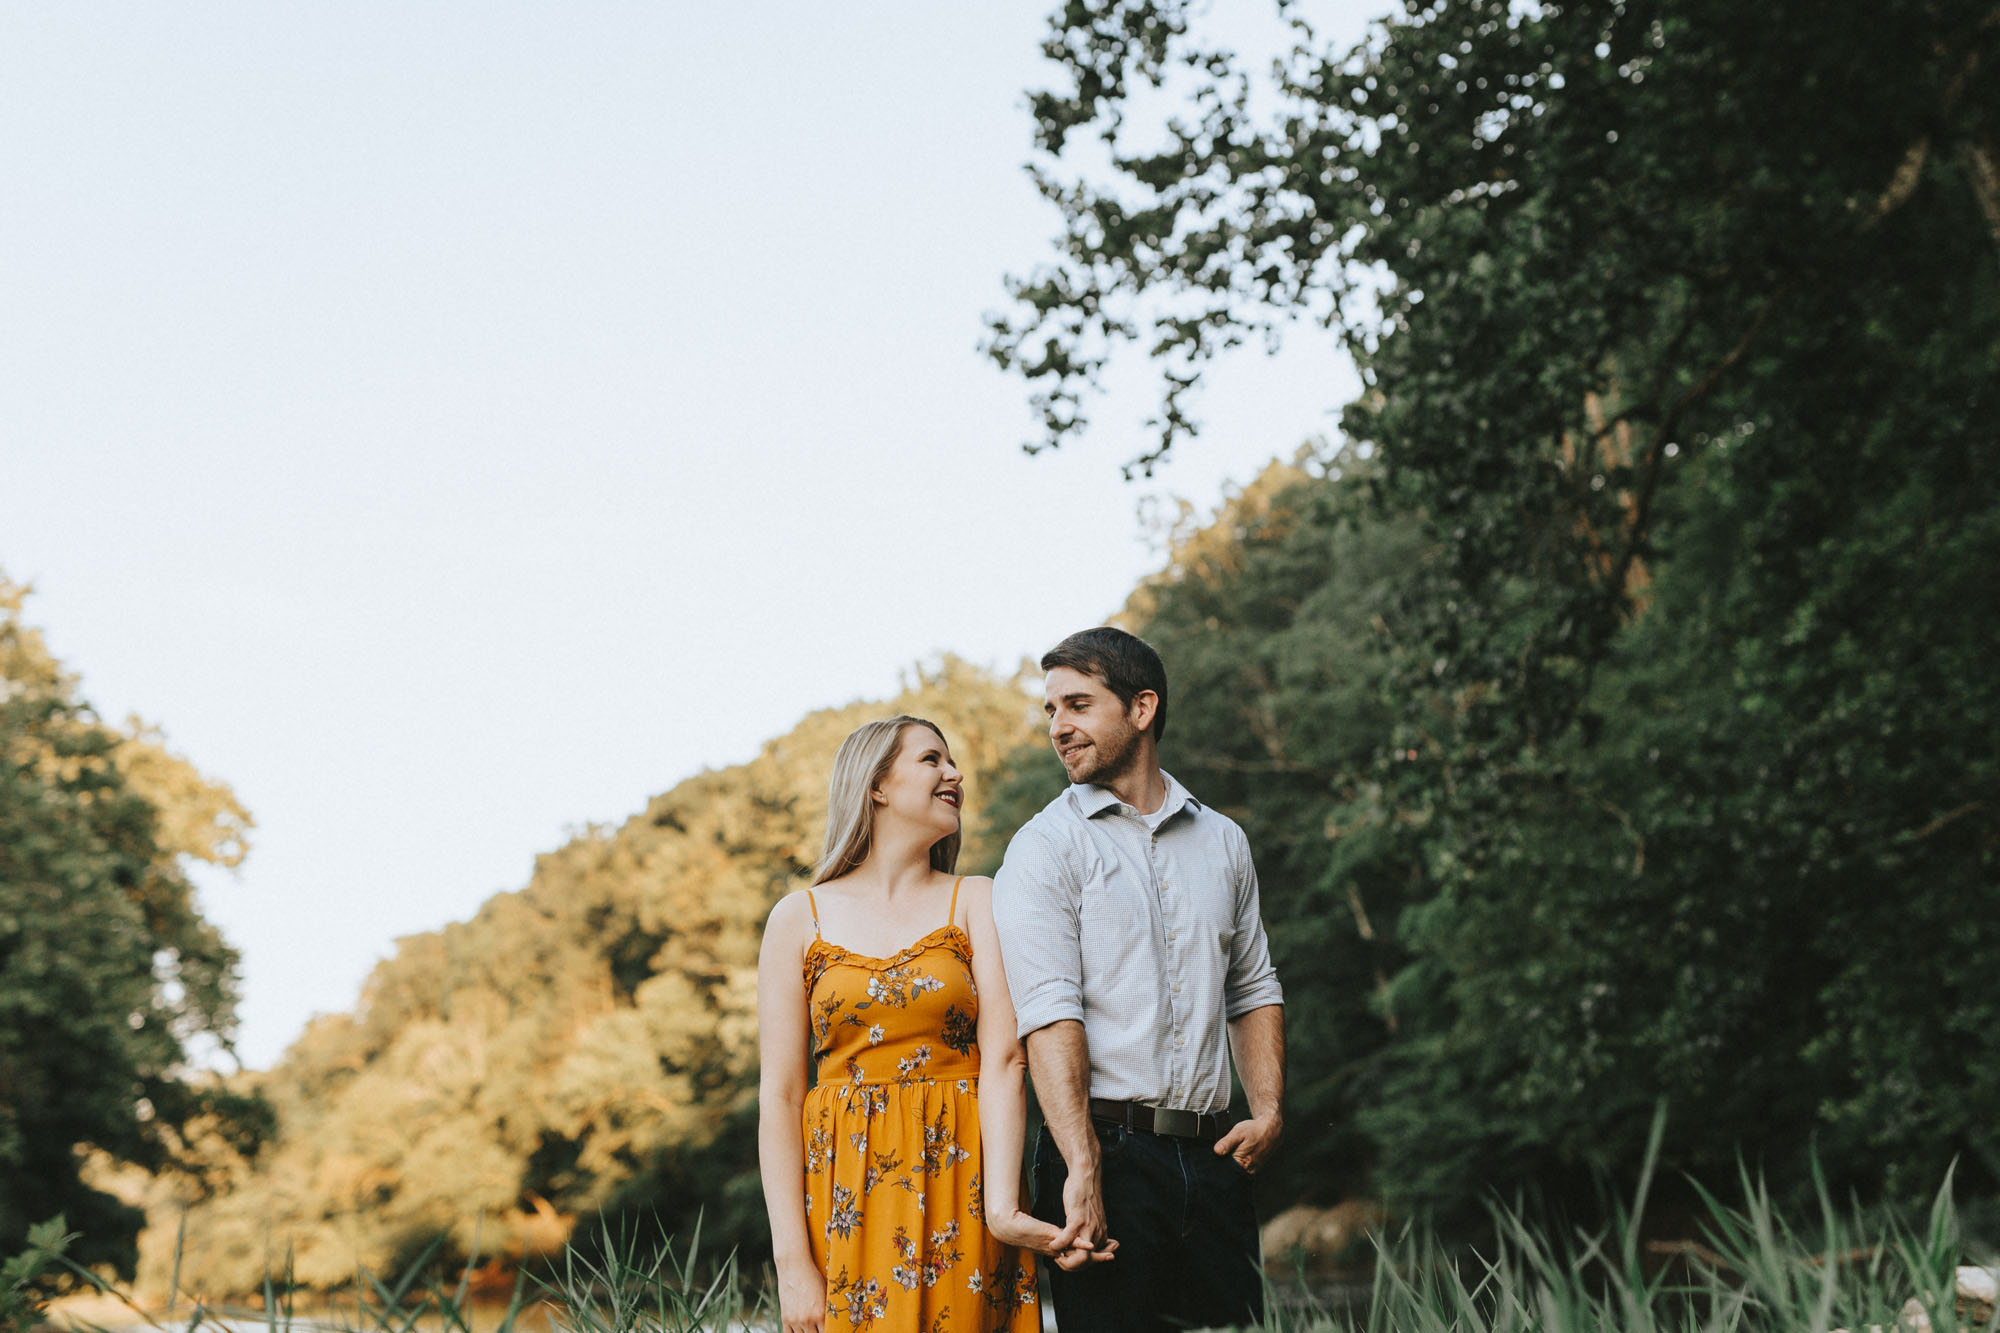 Twisted-Oaks-Jessica-Matt-EngagementI07A3359.jpg